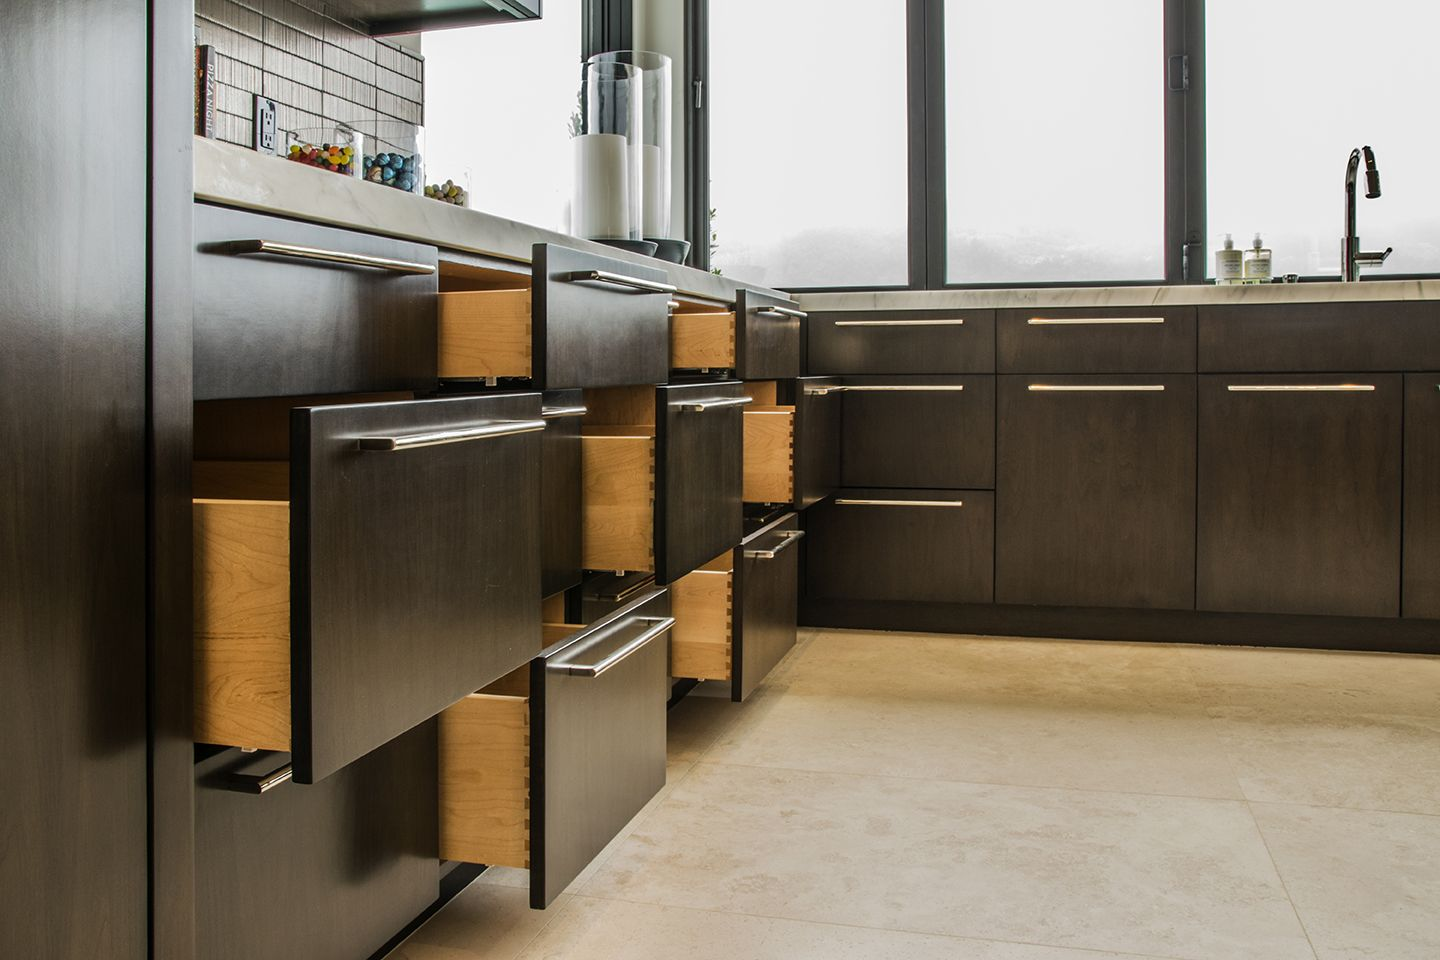 Gallery Dream Kitchen Modular Cabinets Cabinet